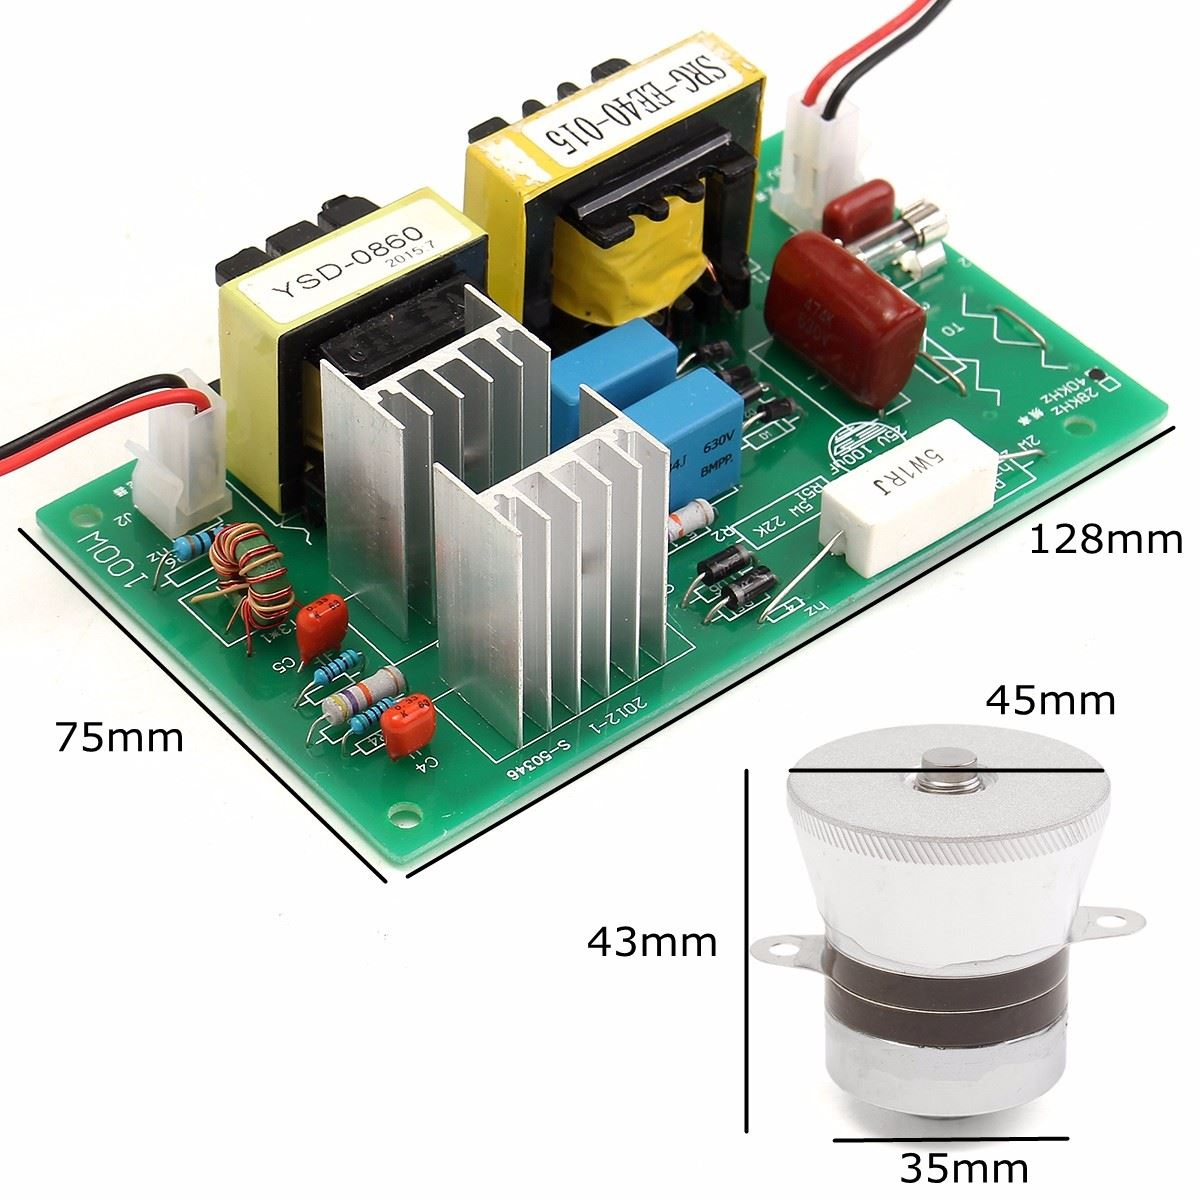 Ultrasonic Driver Circuit Audio Circuits Nextgr Cleaning Transducer Cleaner Power Board 1200x1200